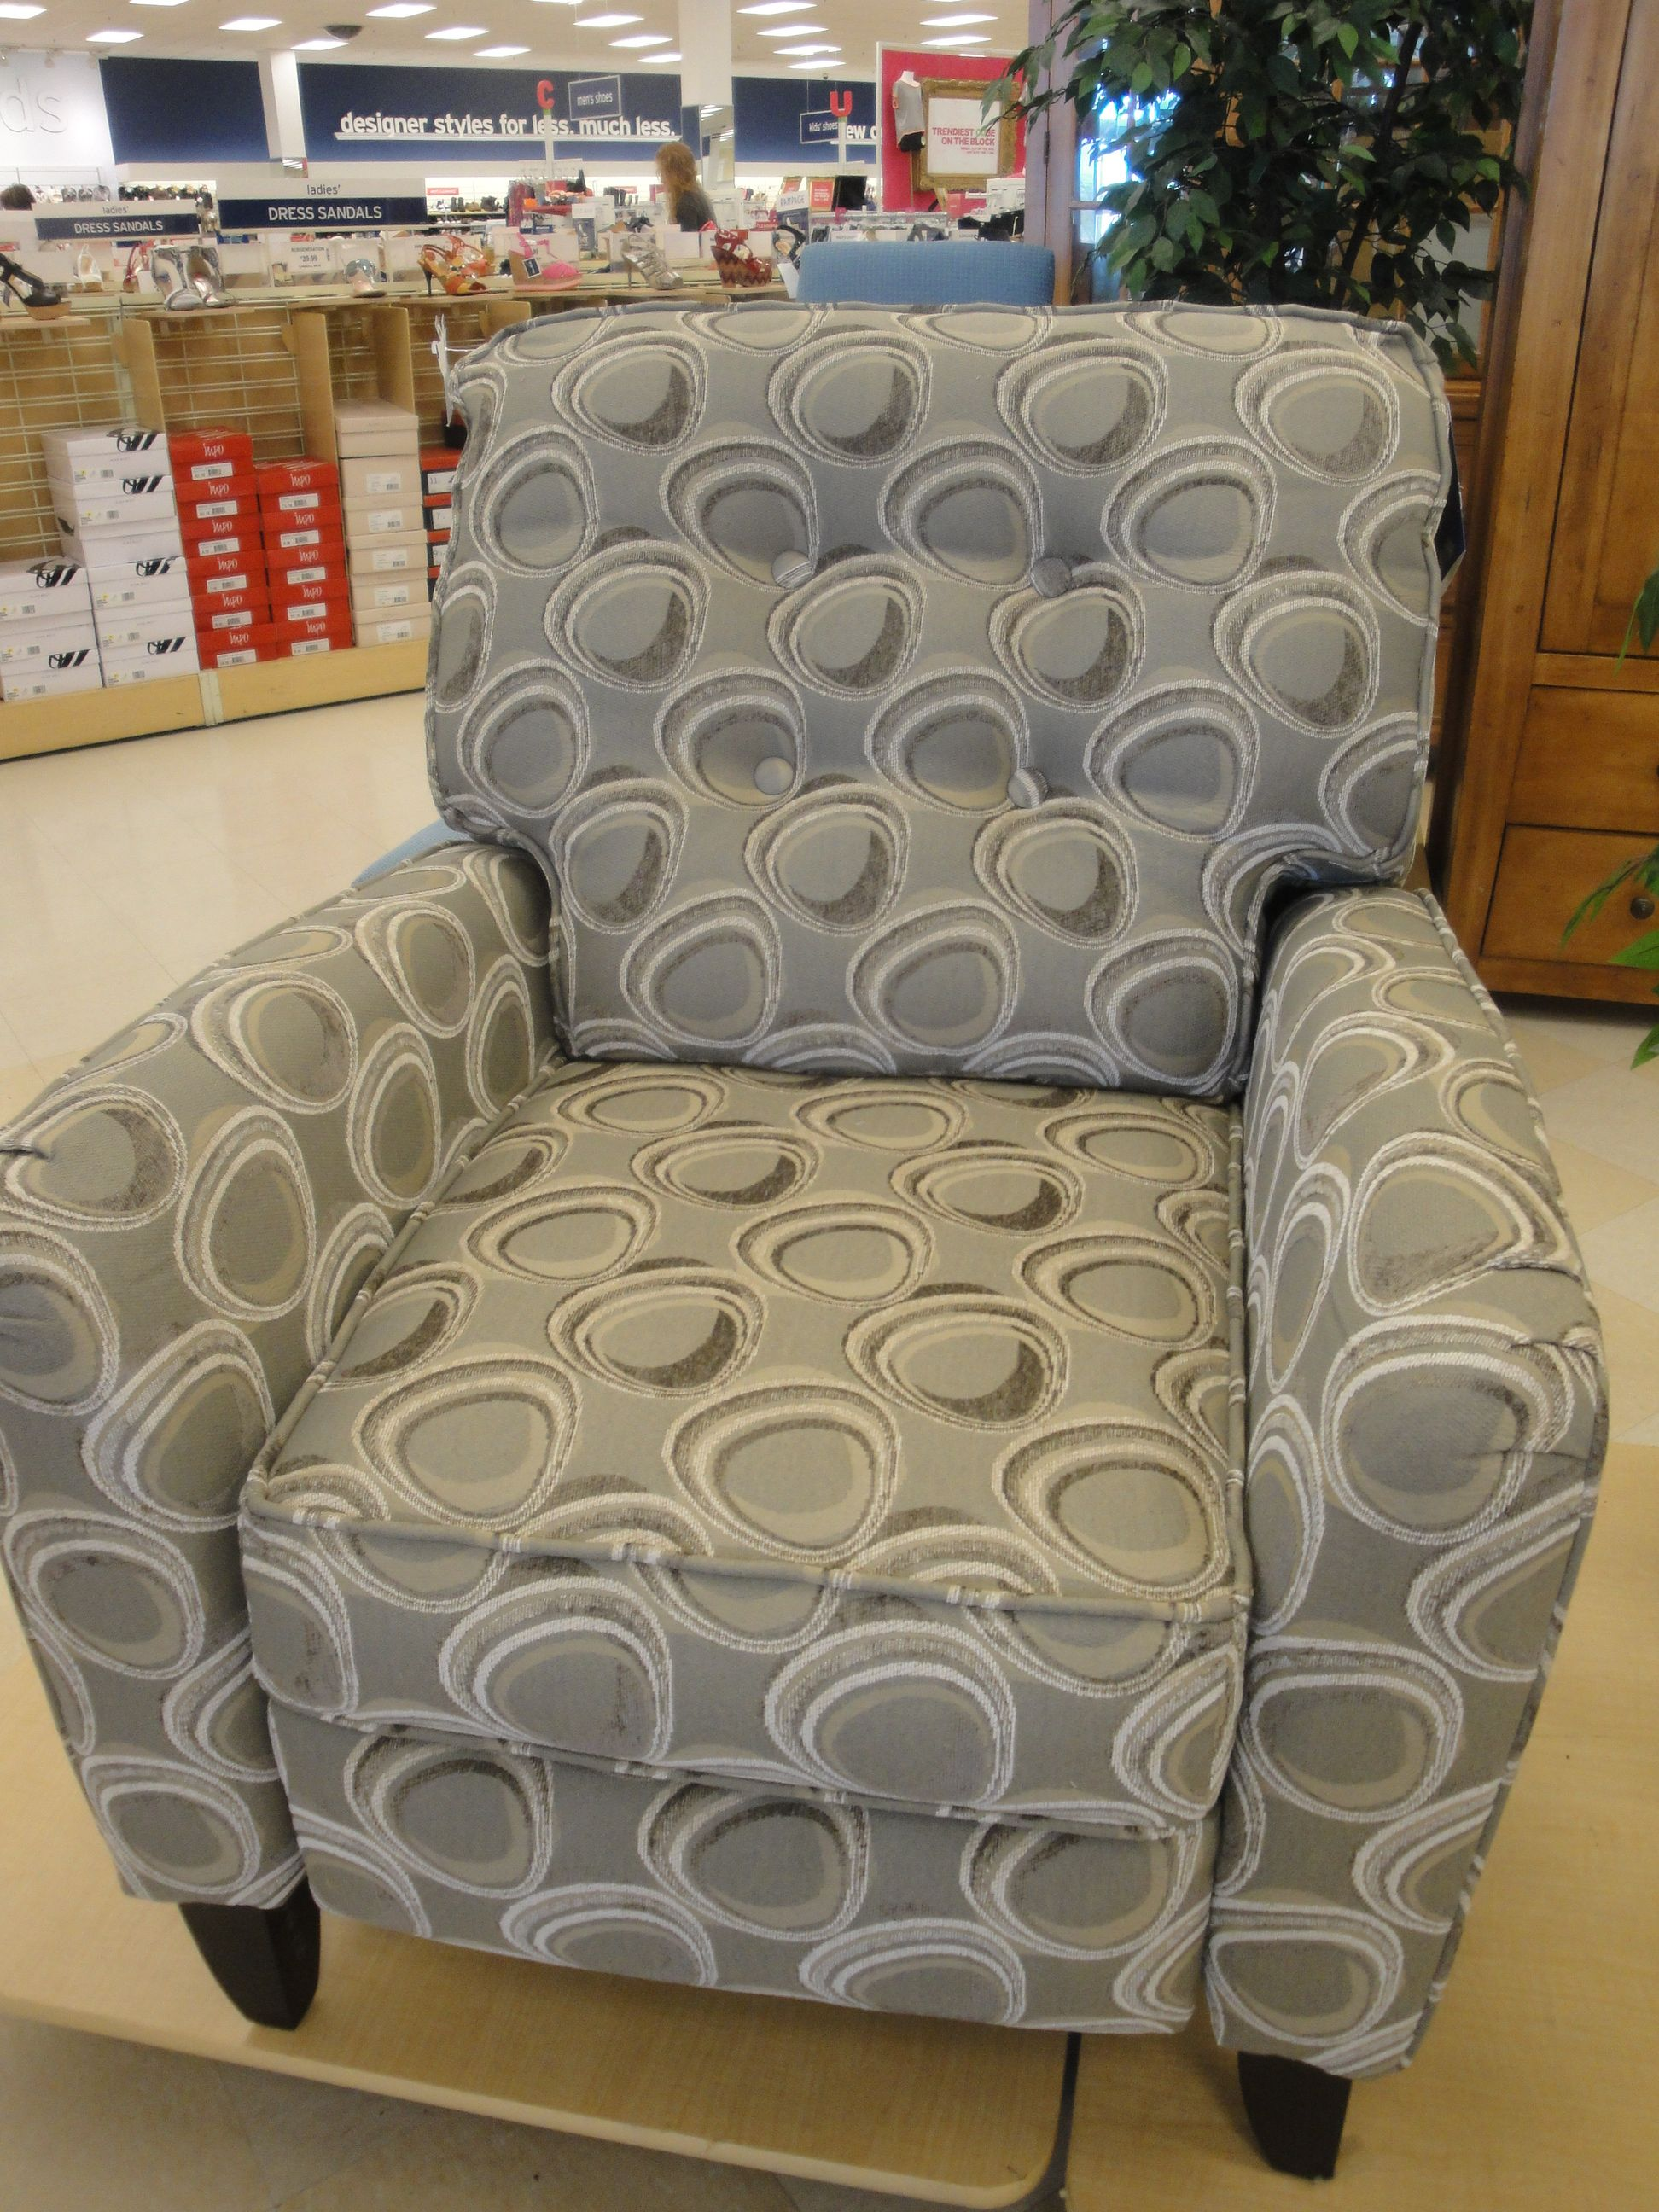 Just bought this very comfortable recliner at marshalls